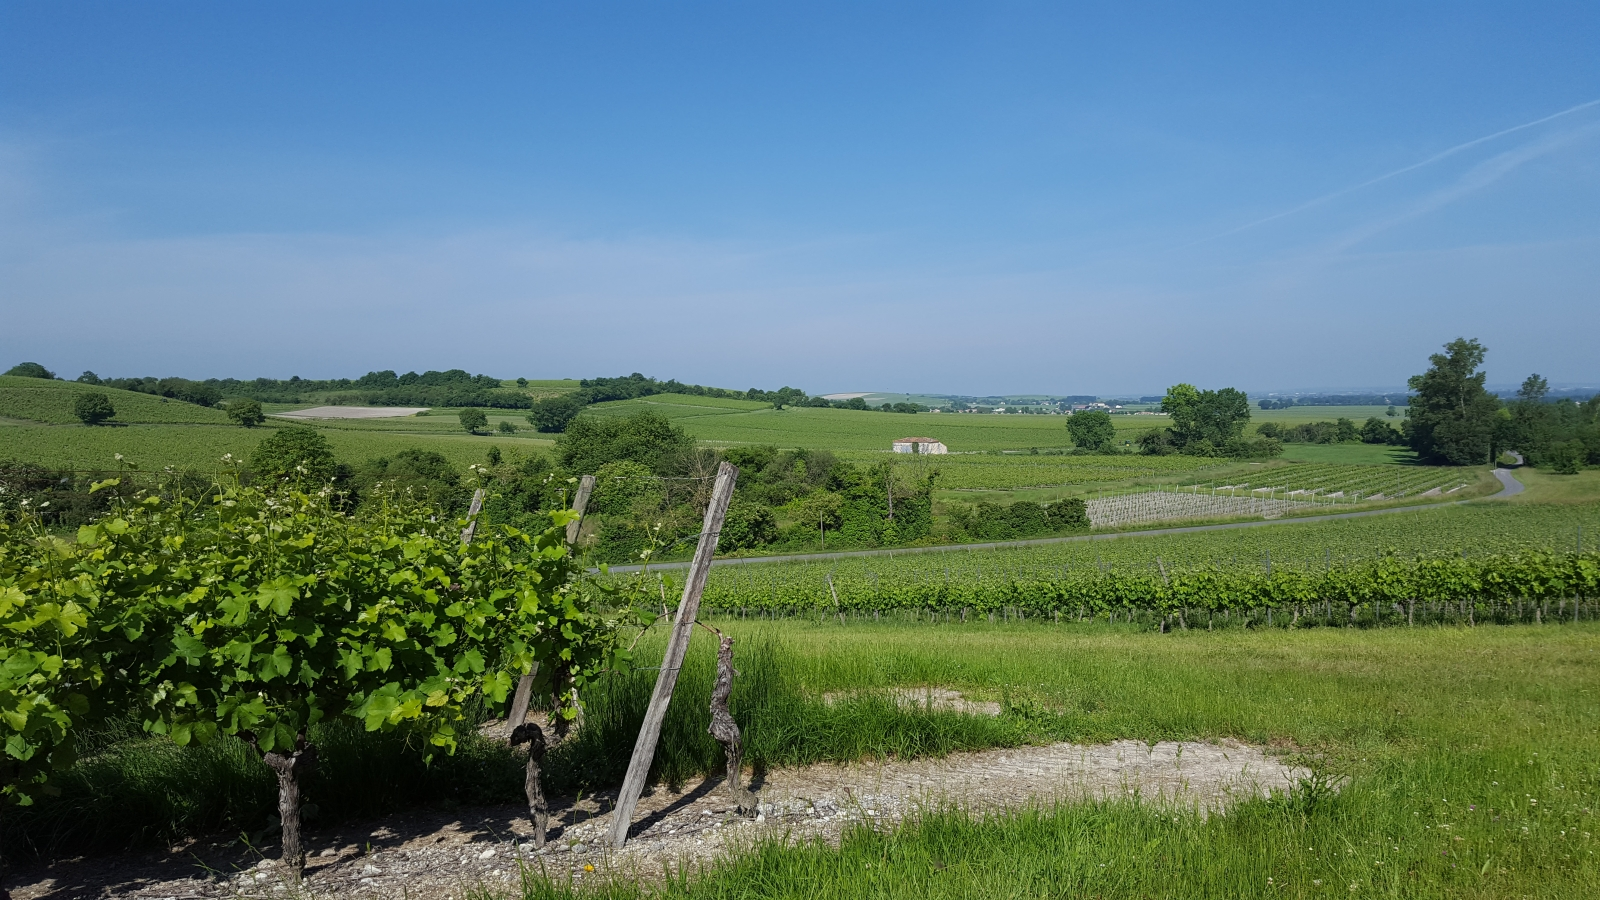 Grapes vines and rolling hills in Cognac